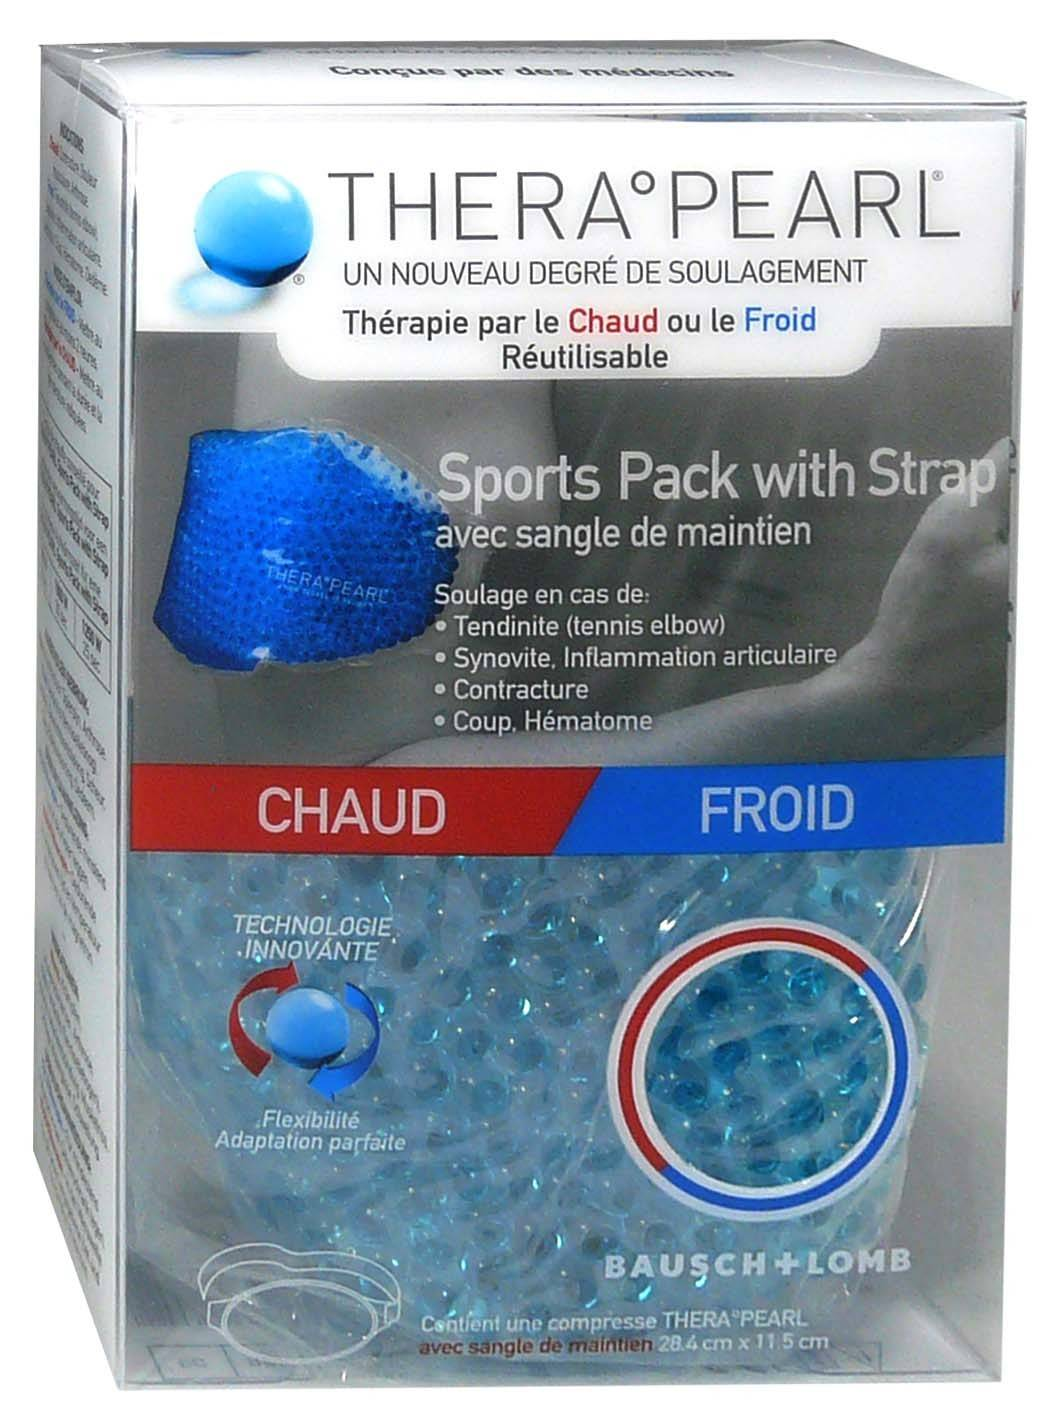 BAUSCH & LOMB Thera pearl sports pack avec sangle